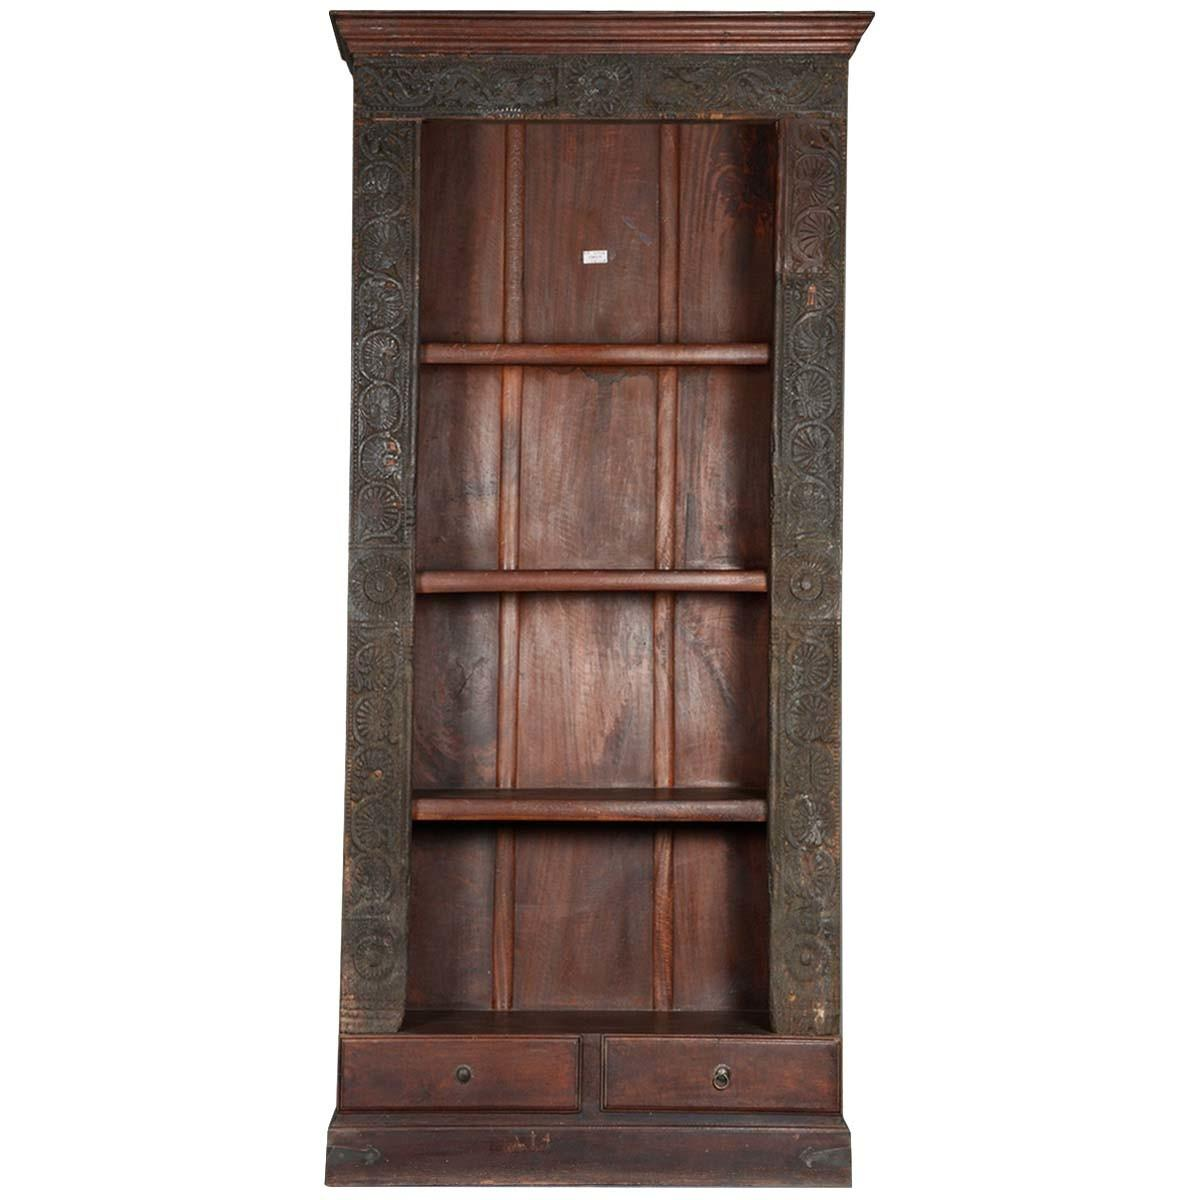 Gothic Reclaimed Wood Shelf Open Display Bookcase